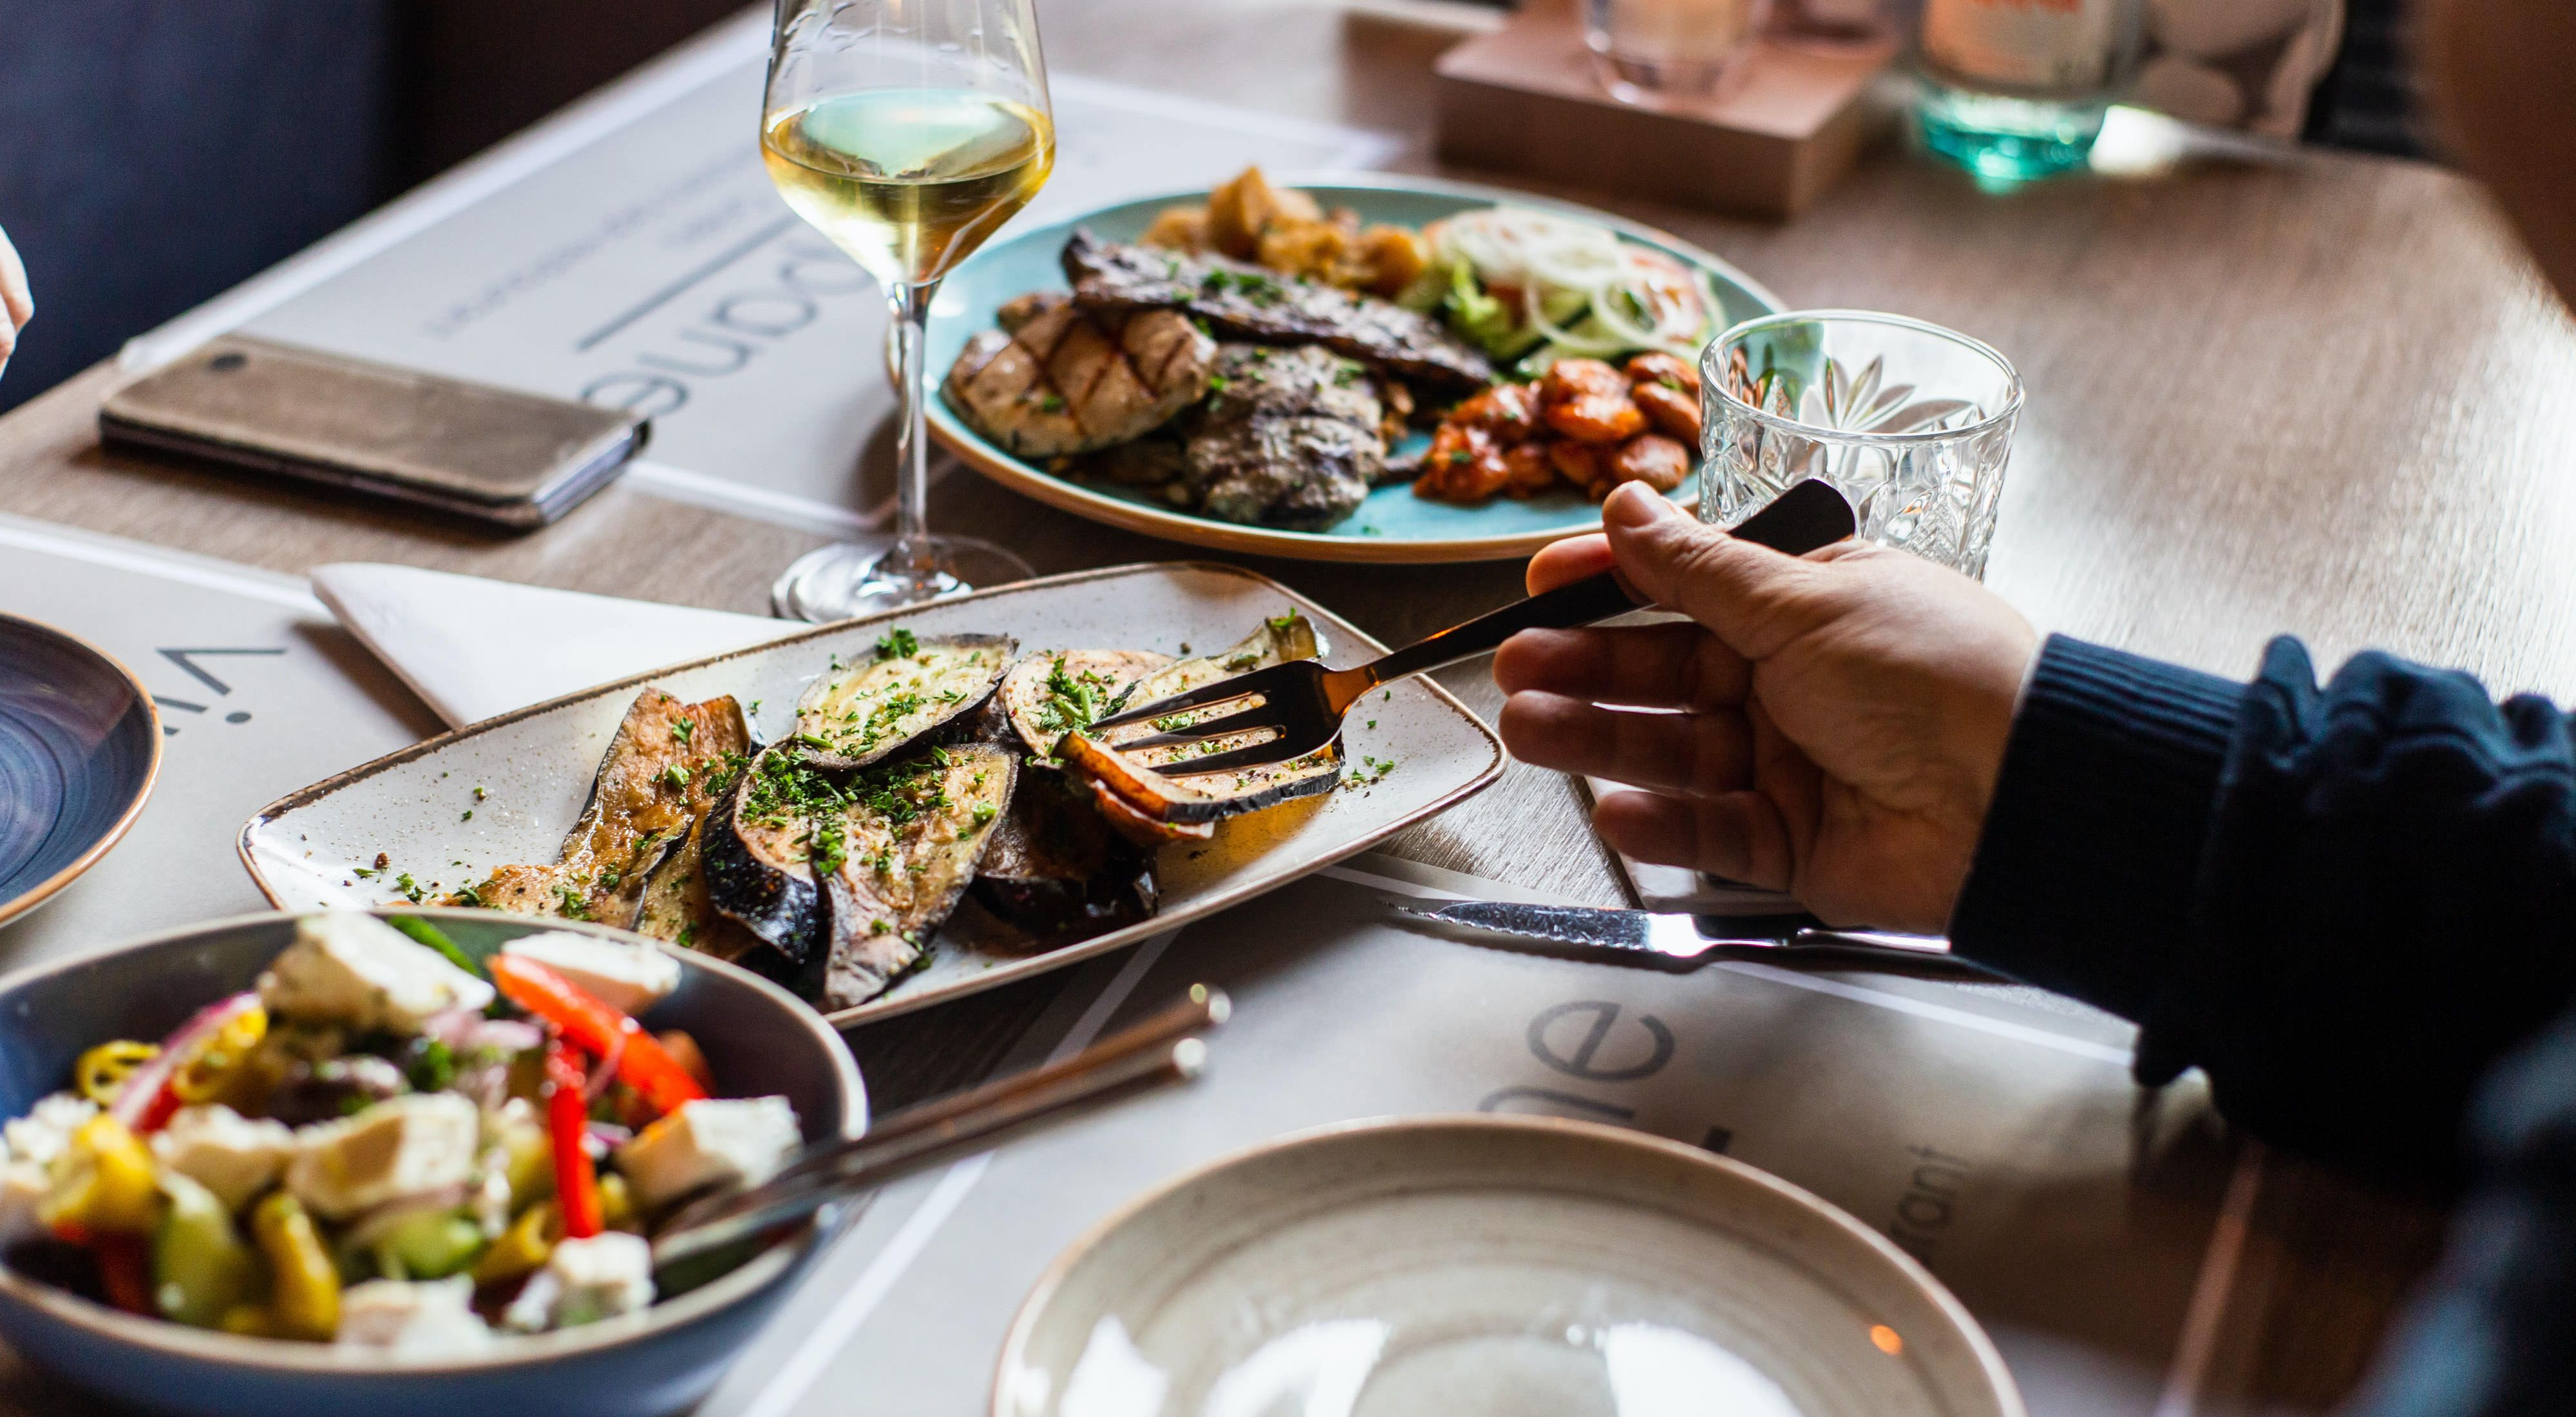 a person's arms pictured sitting at a dinner table with a variety of food on the table